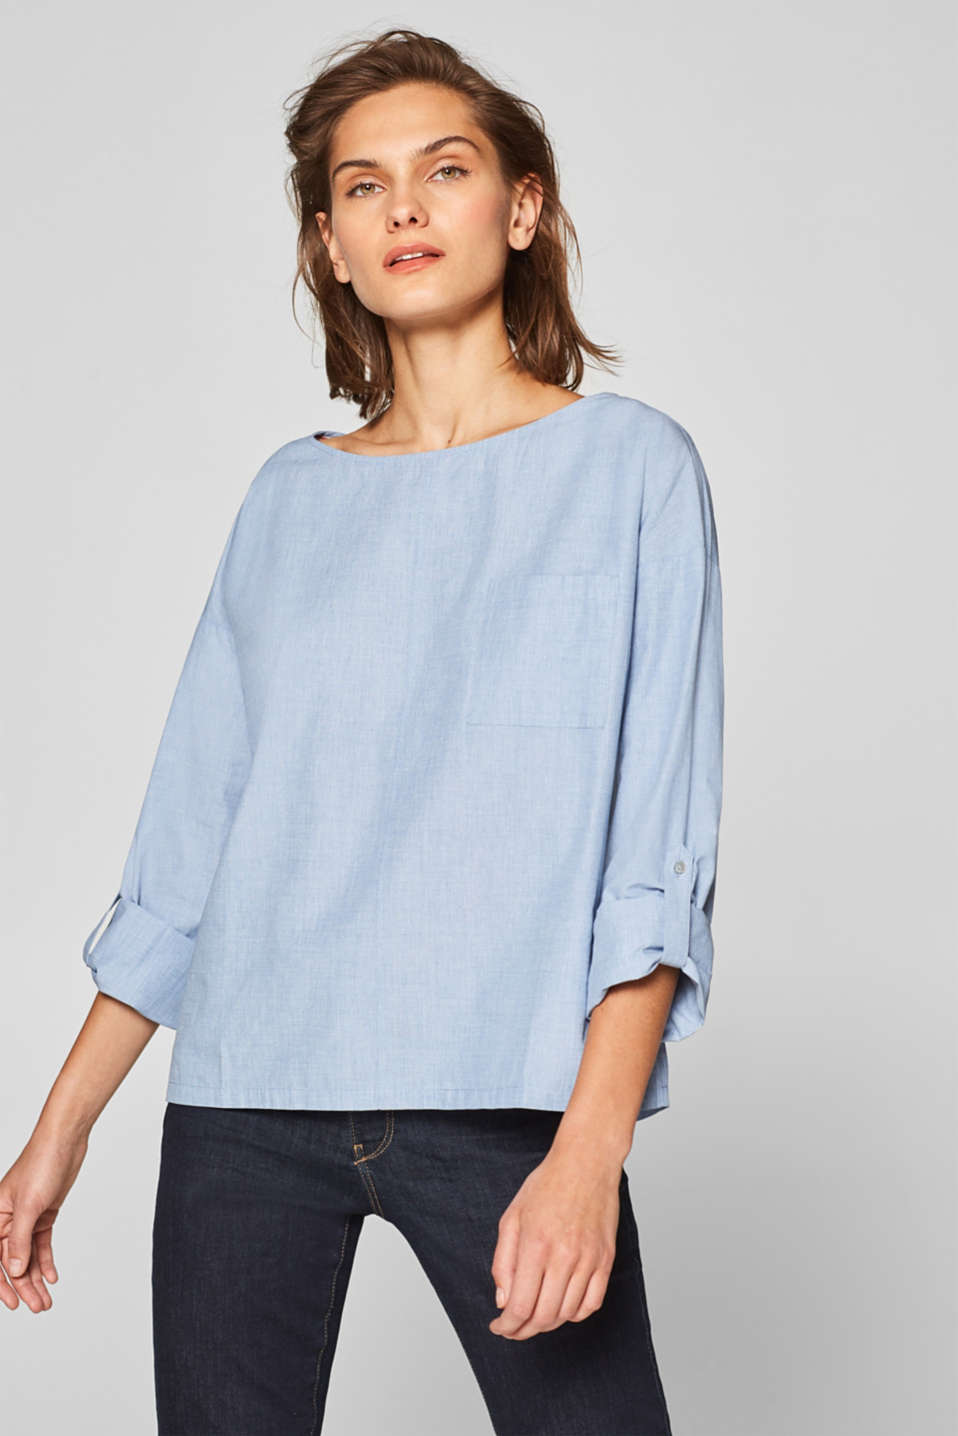 Esprit - Boxy chambray blouse, 100% cotton